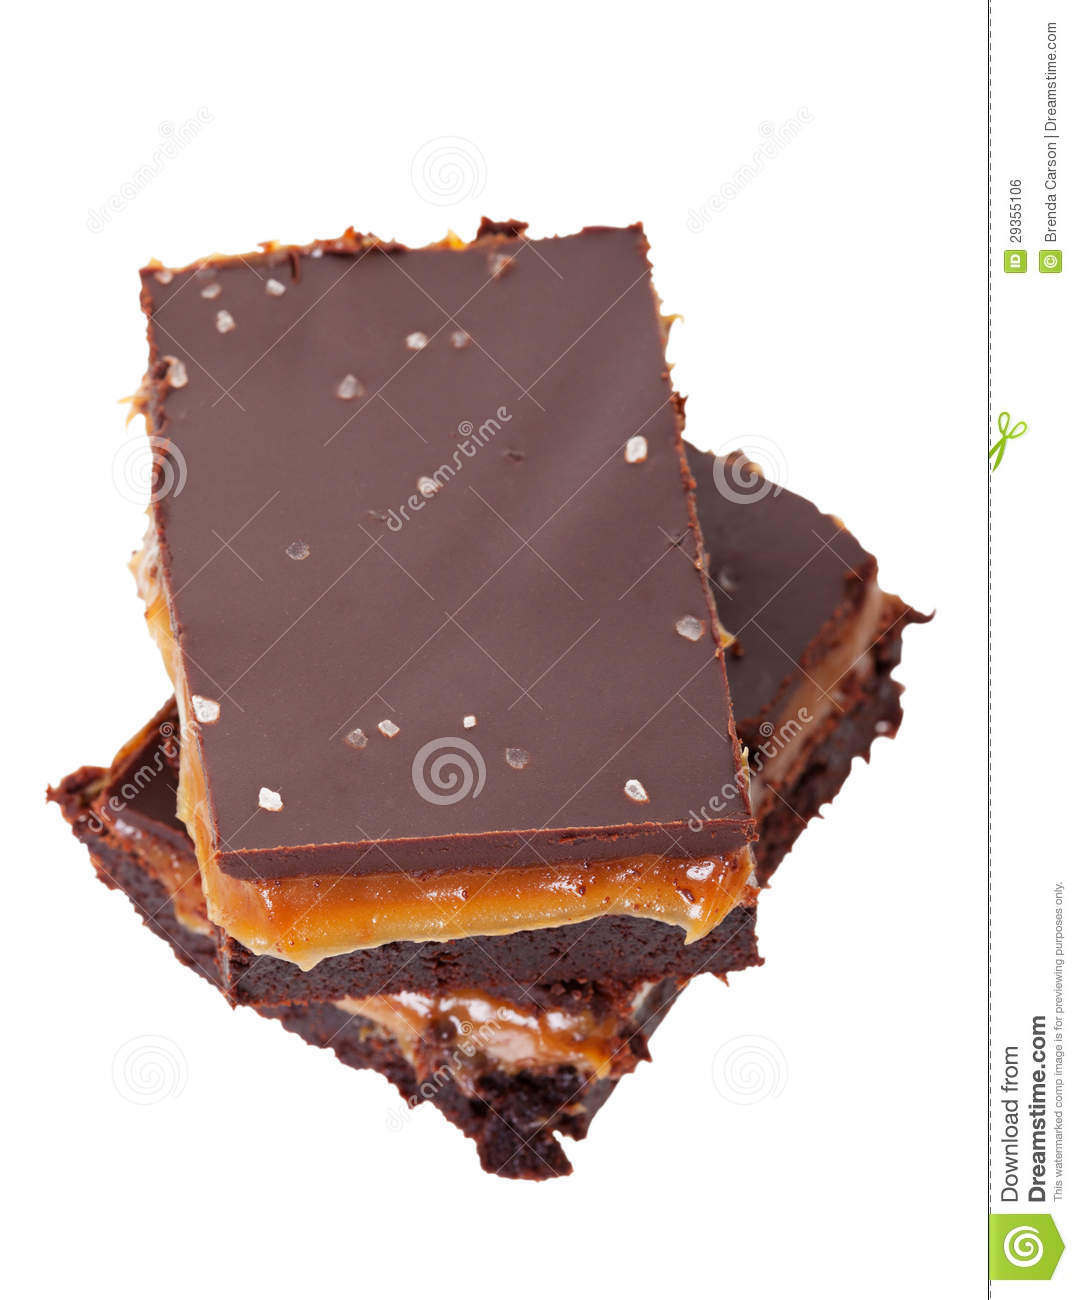 Salted Chocolate Caramel Brownies Royalty Free Stock Image - Image ...